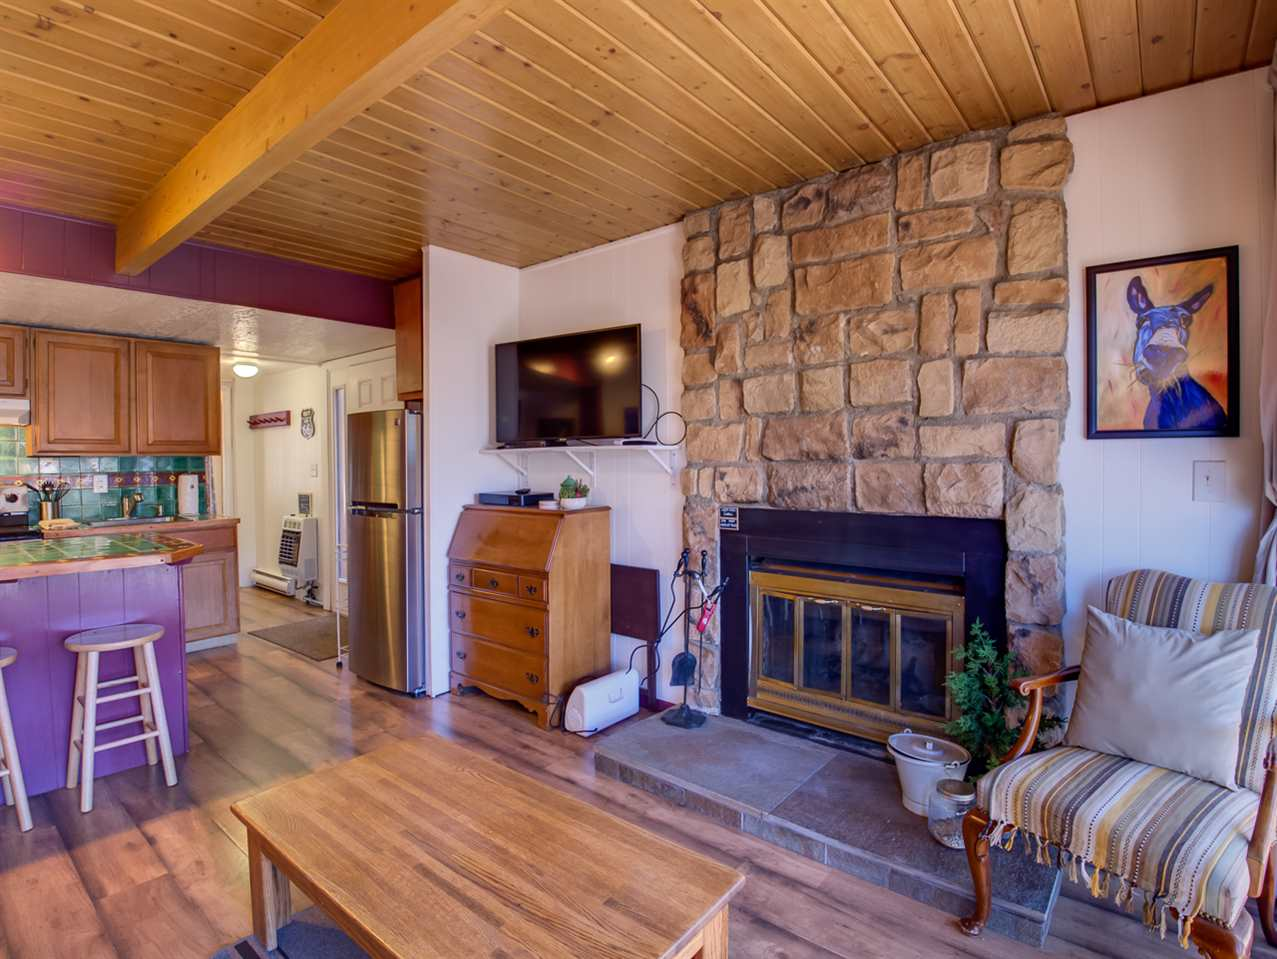 35 N Angel Fire Rd Northwind 204, Angel Fire, NM 87710